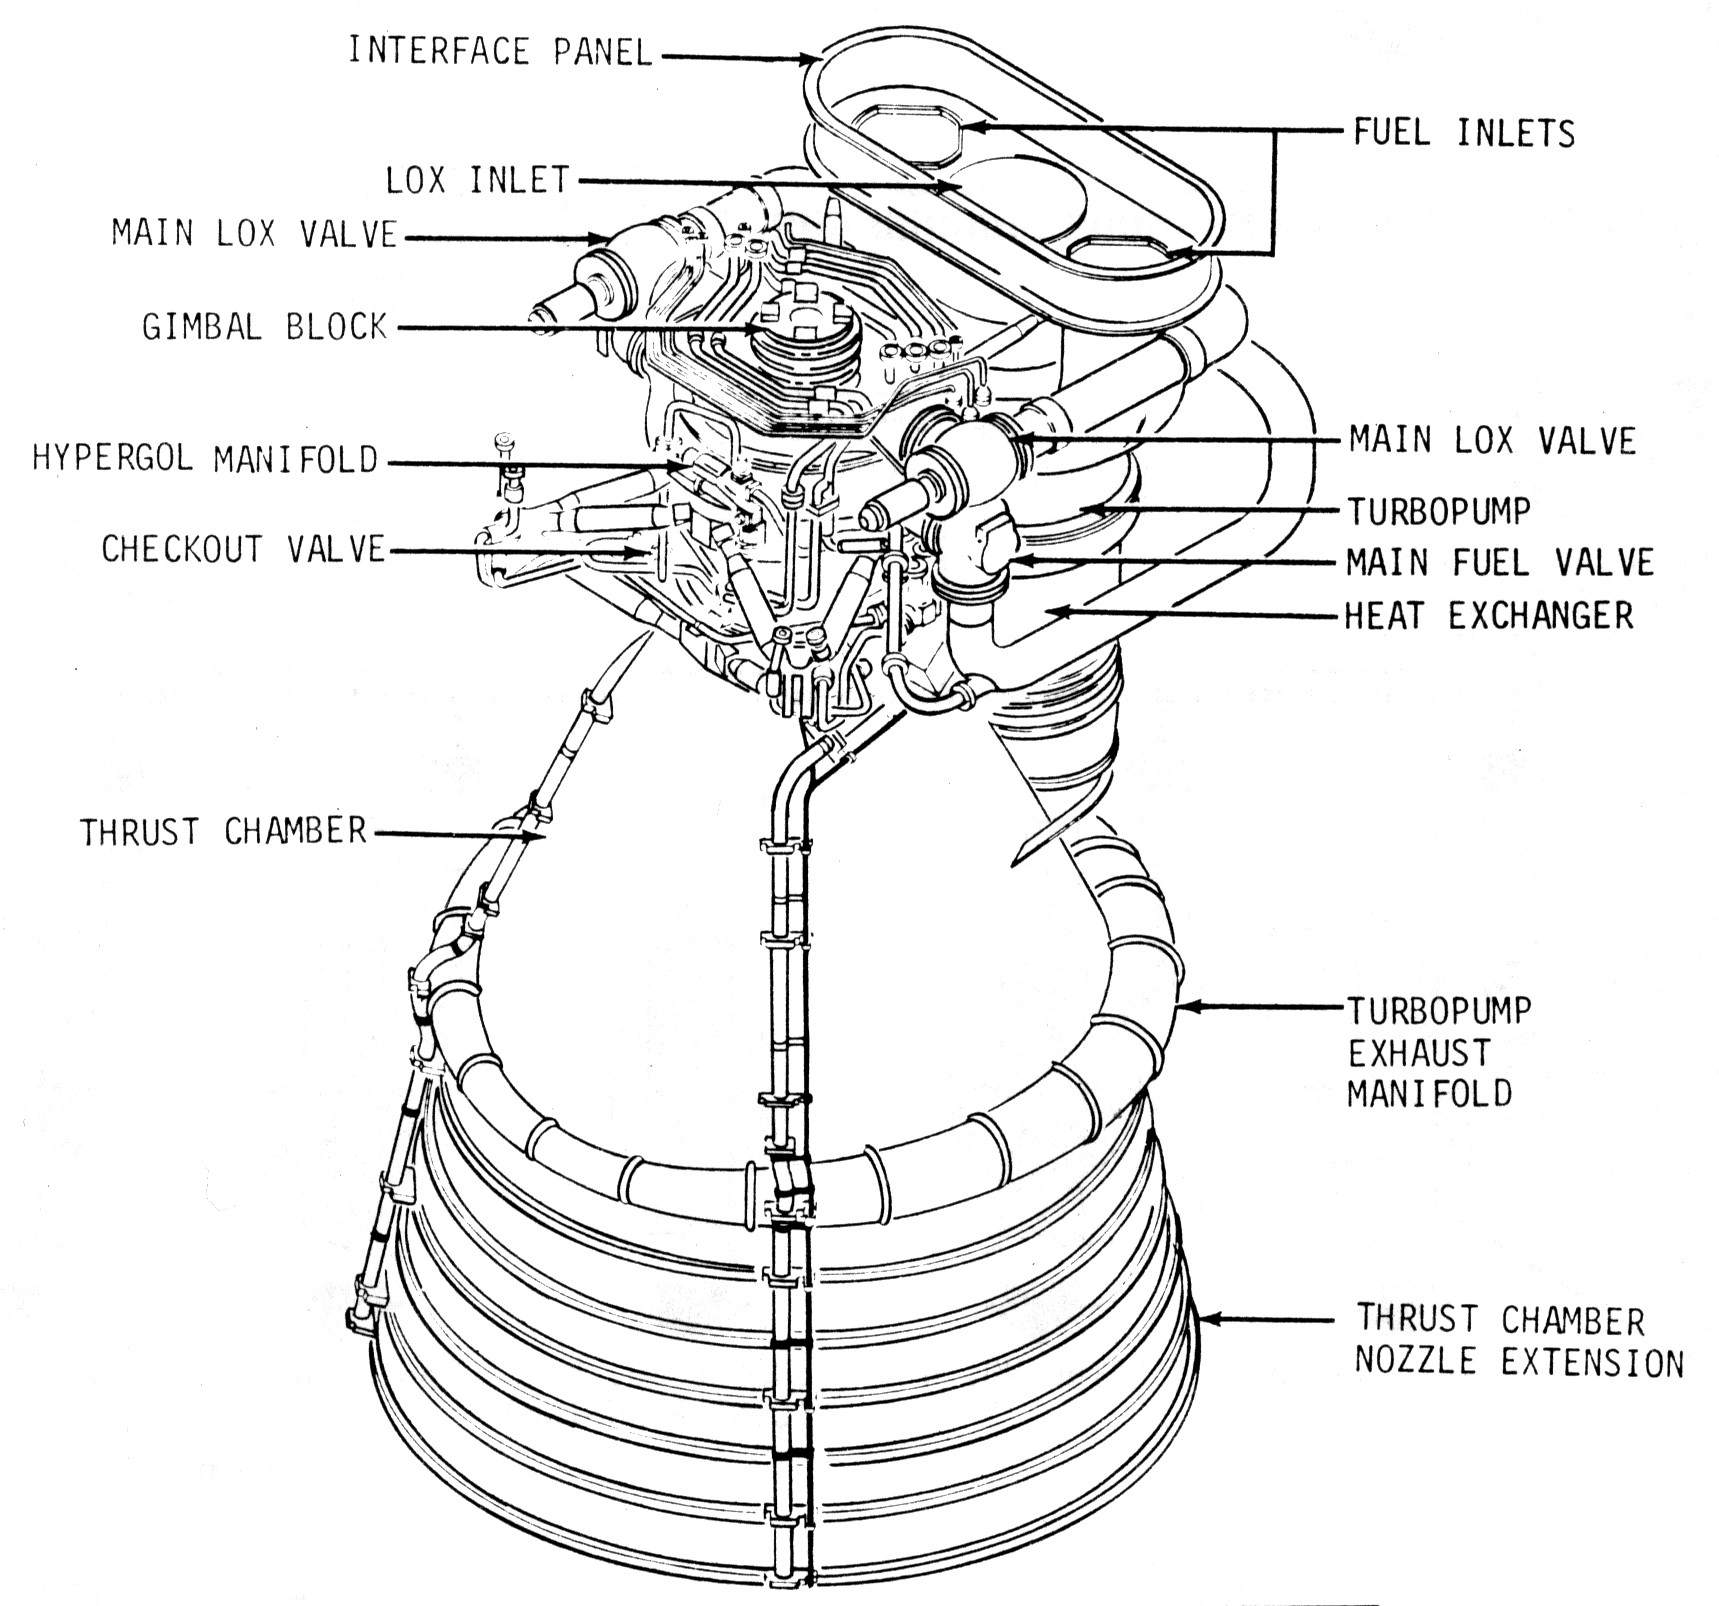 F1       Engine     Propulsion of the Saturn    V    Moon Rocket